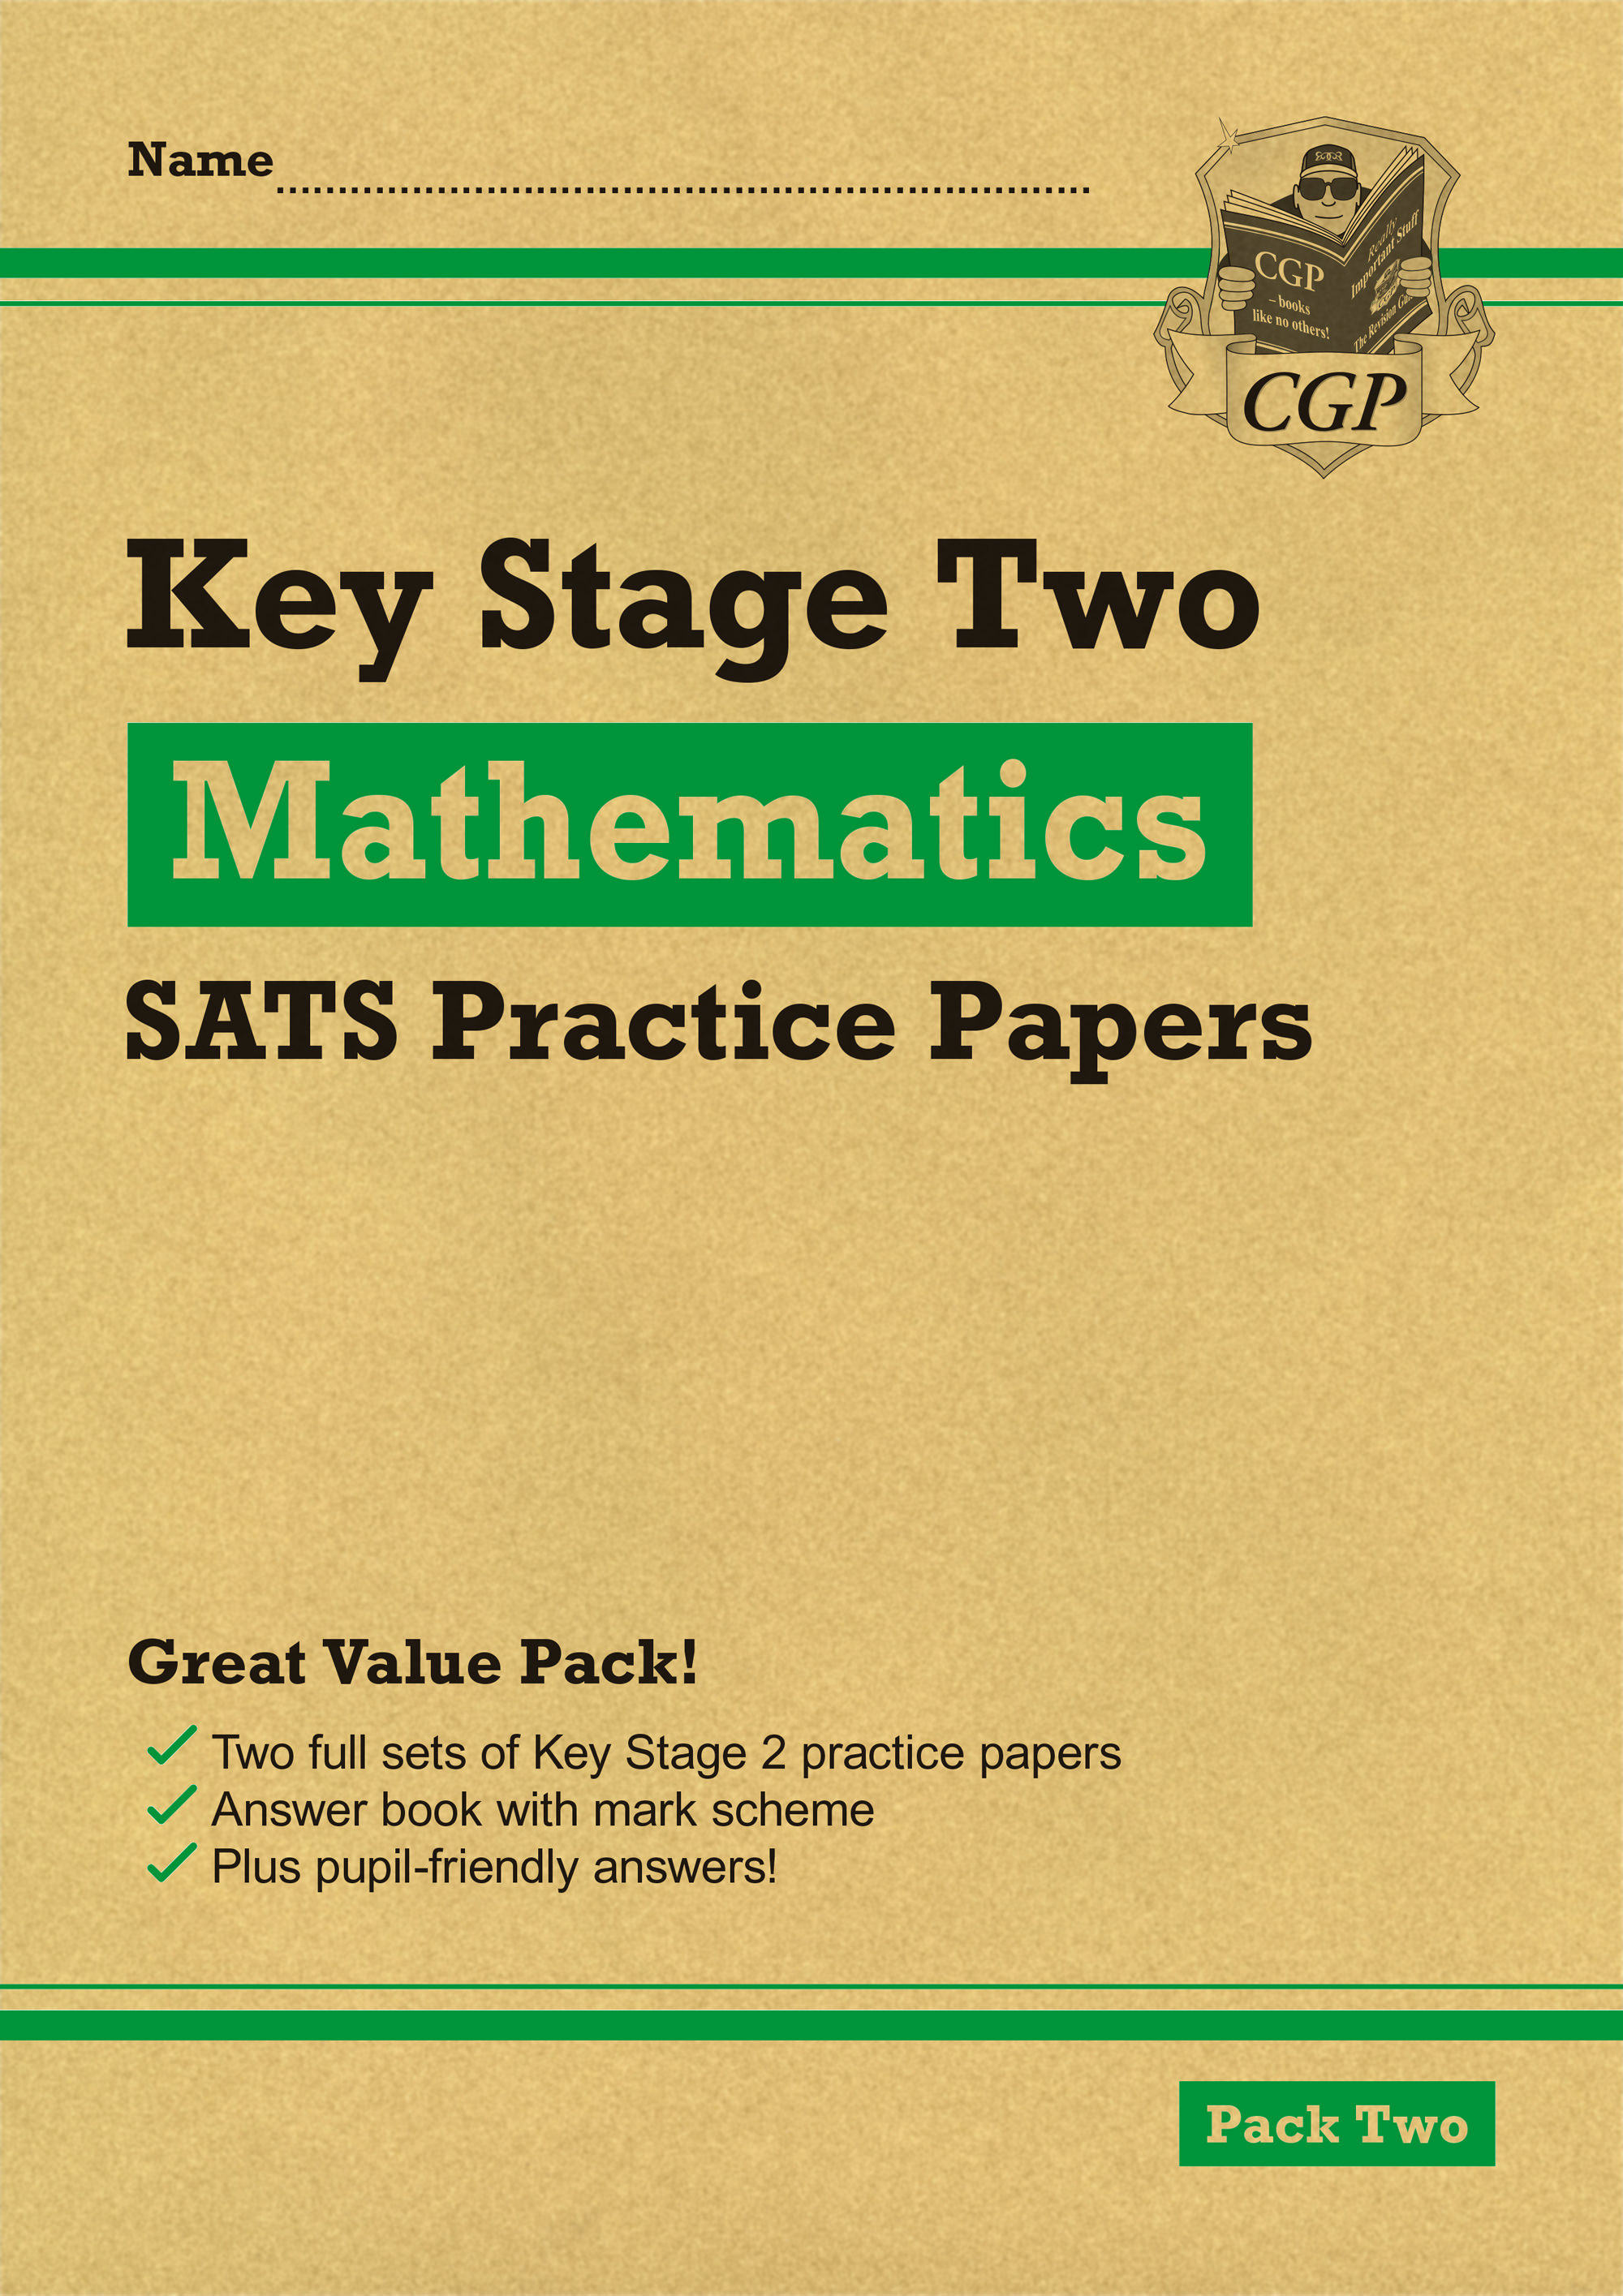 MHGP27 - New KS2 Maths SATS Practice Papers: Pack 2 (for the 2019 tests)